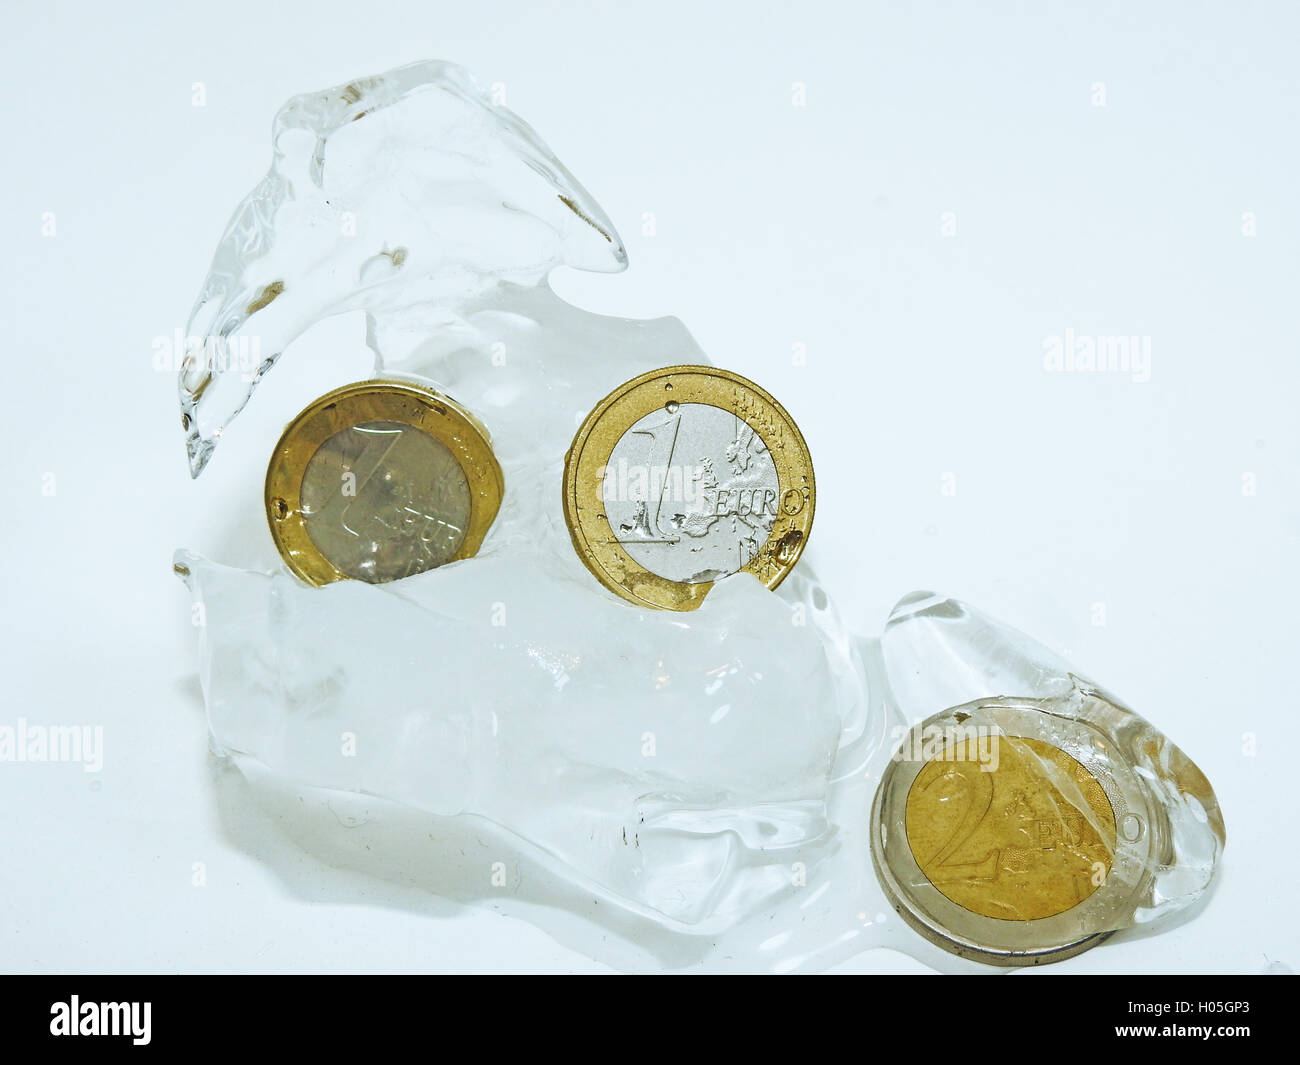 Cache euro coins in ice. - Stock Image